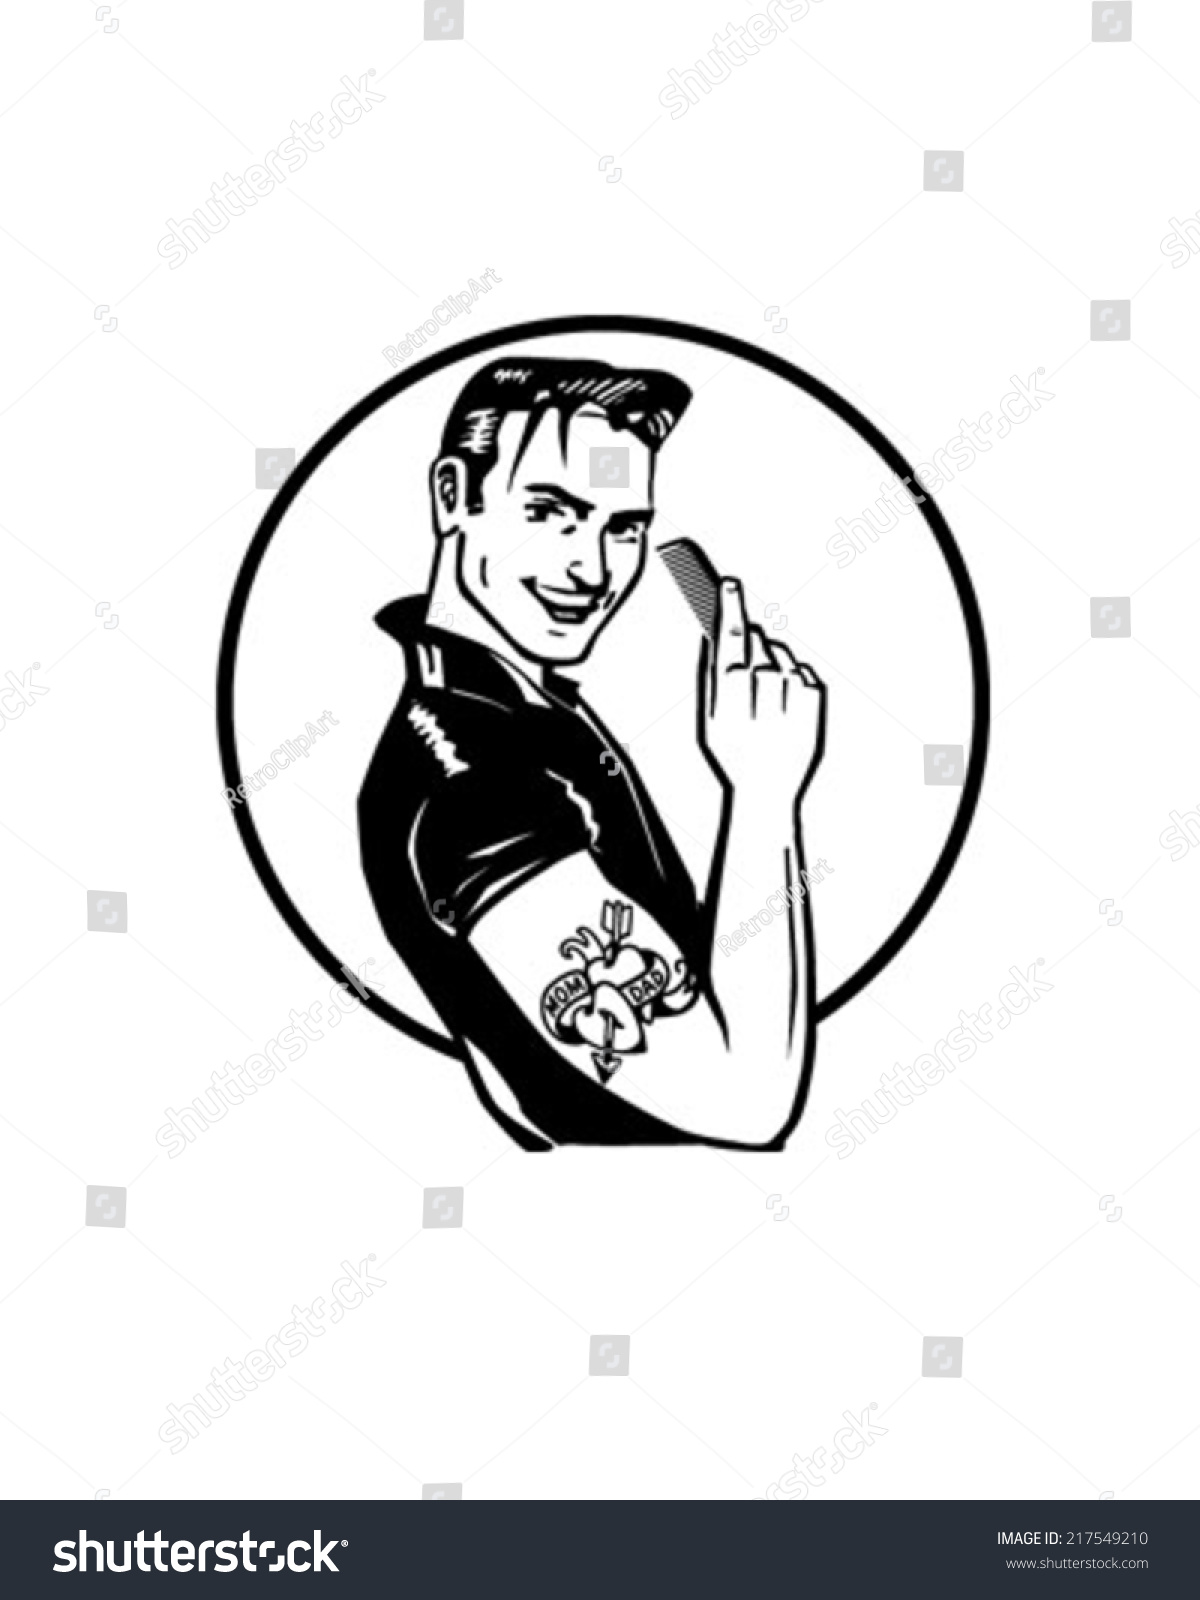 Fifties Greaser Retro Clipart Illustration Stock Vector 217549210 ...